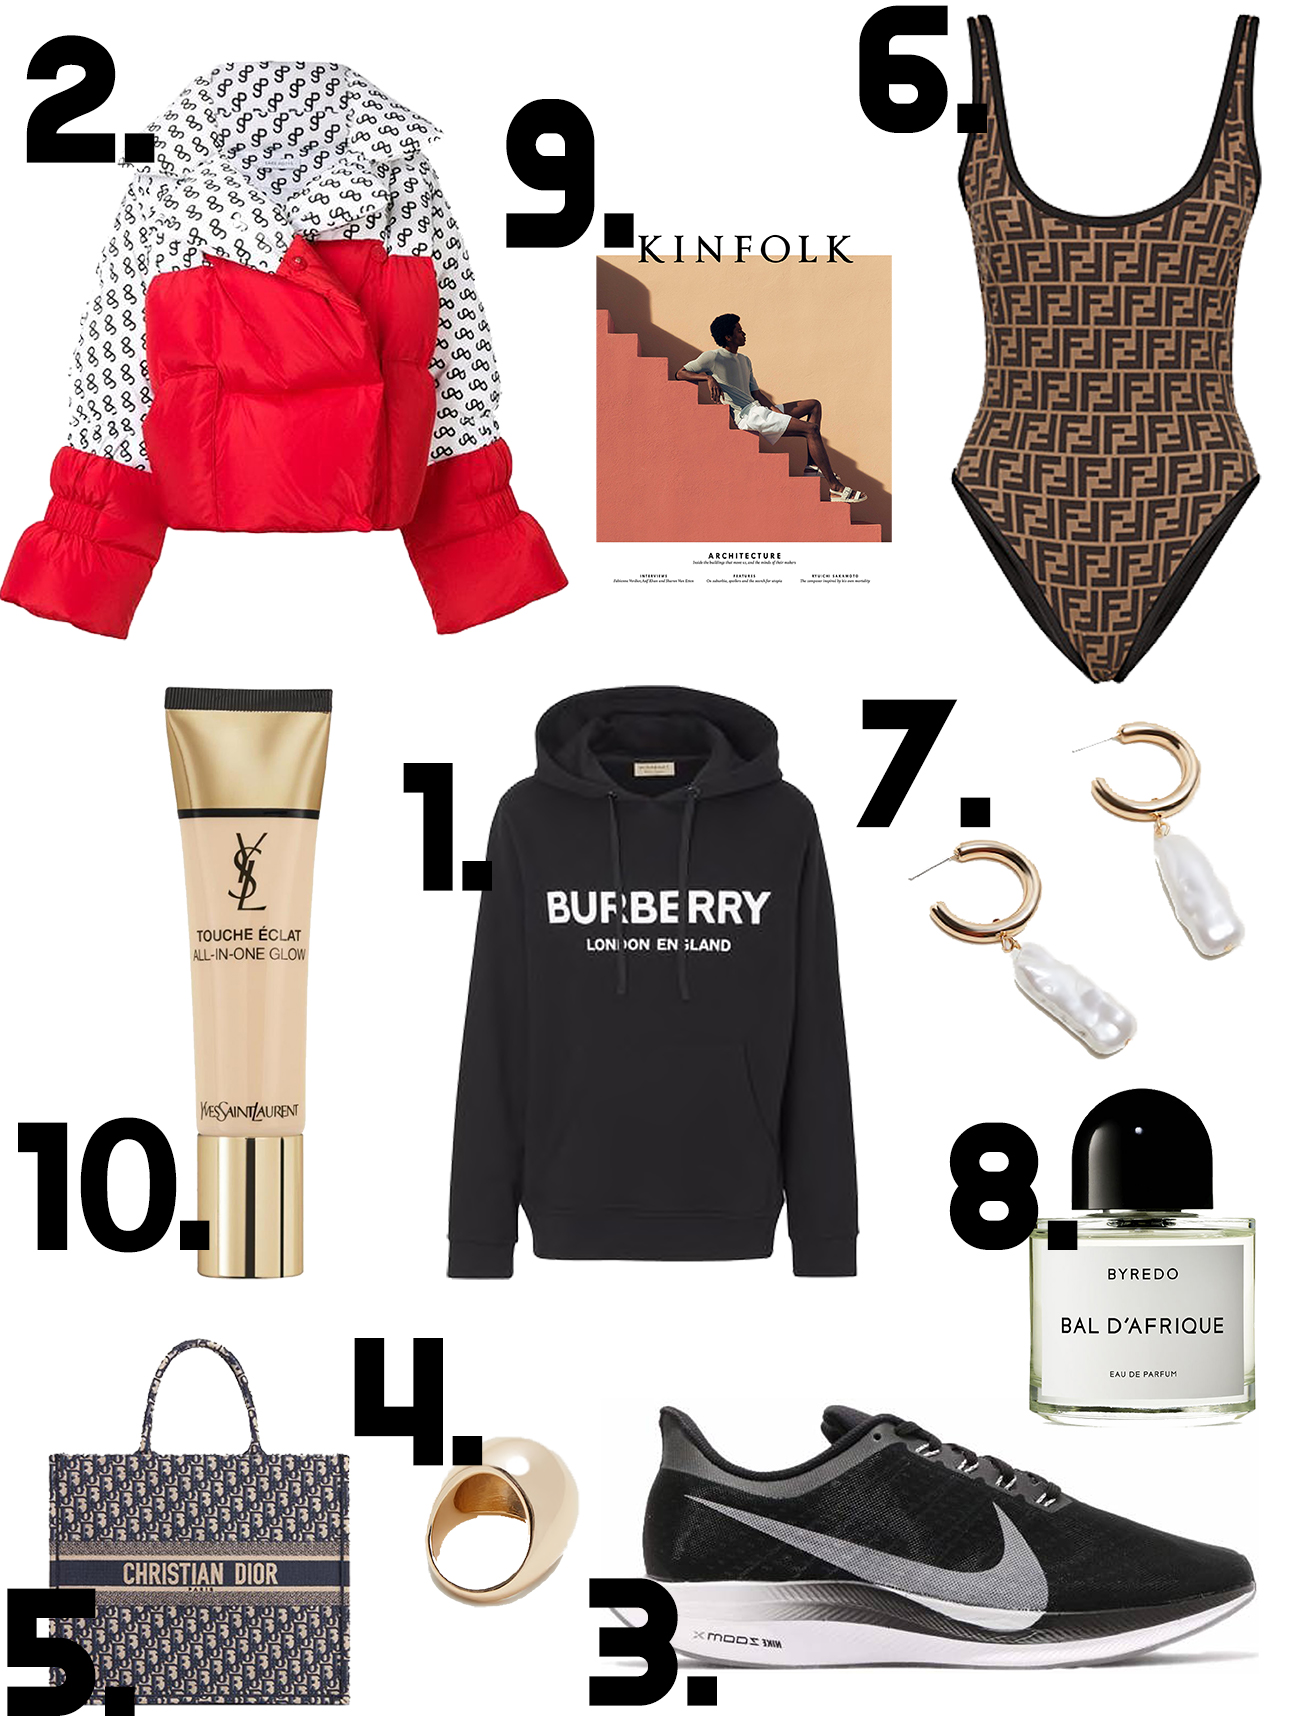 TOP 10 ON THE WISHLIST: